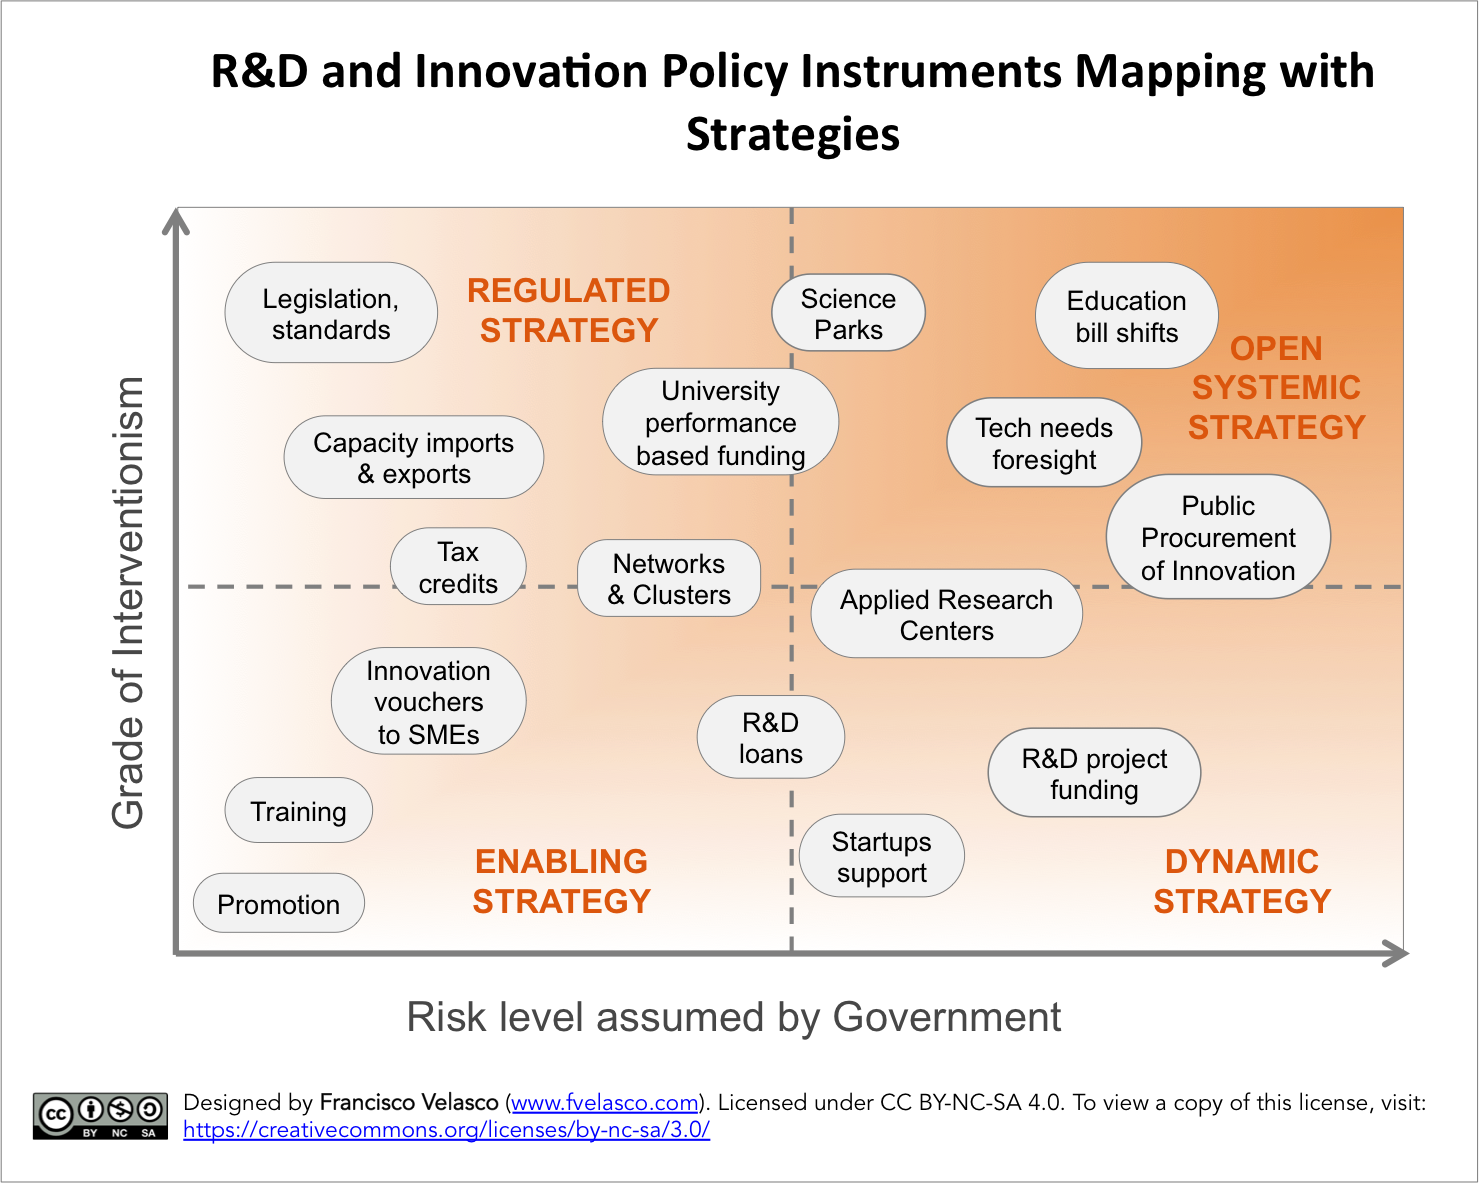 Figure showing a model mapping instruments of R&D Public Innovation Policies, prepared by Francisco Velasco and licensed under CC BY-NCSA 4.0. Blog de Francisco Velasco: www.fvelasco.com